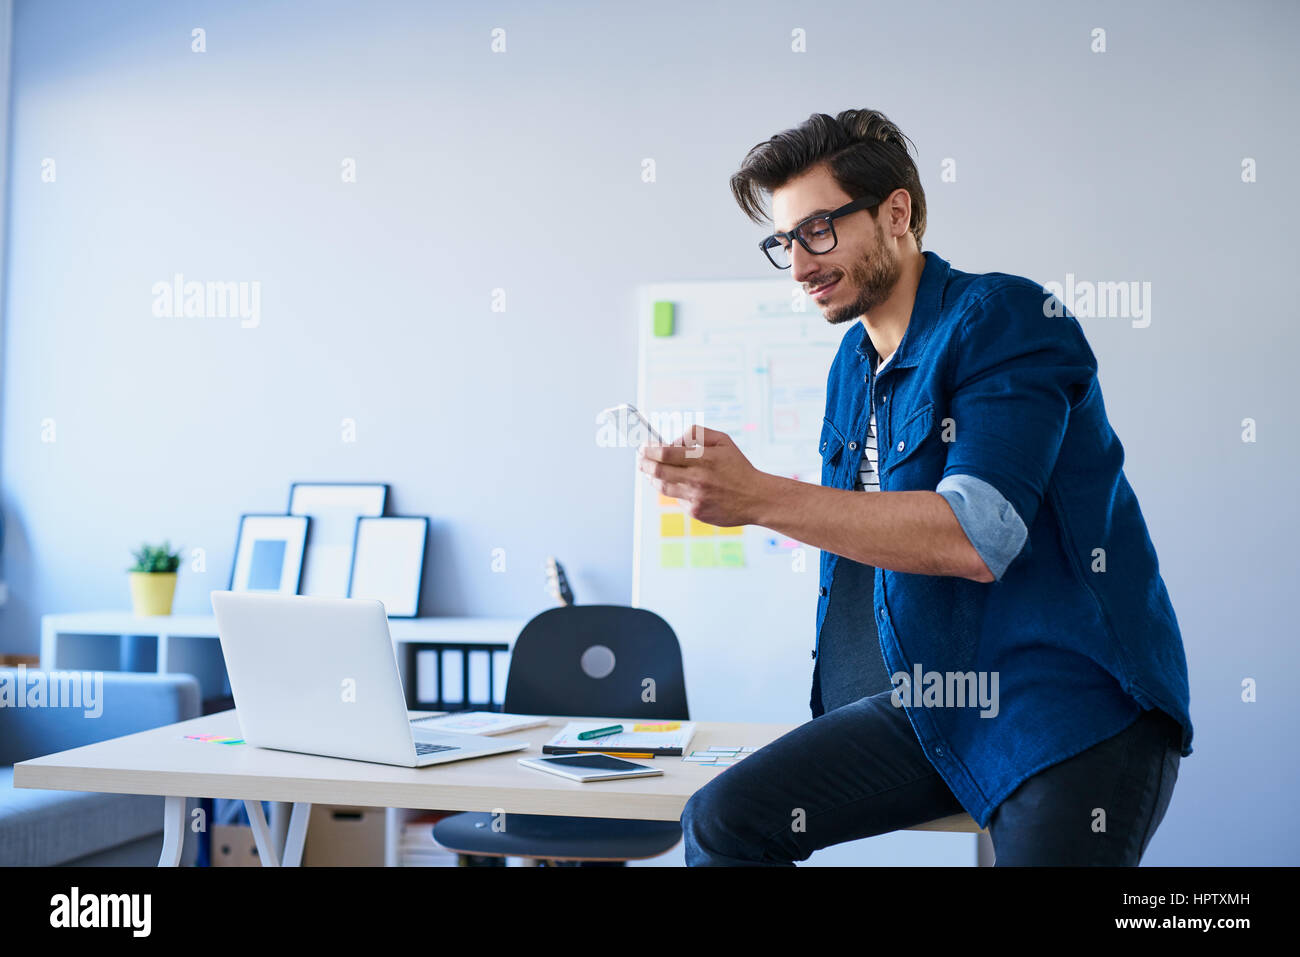 Web Developer High Resolution Stock Photography And Images Alamy